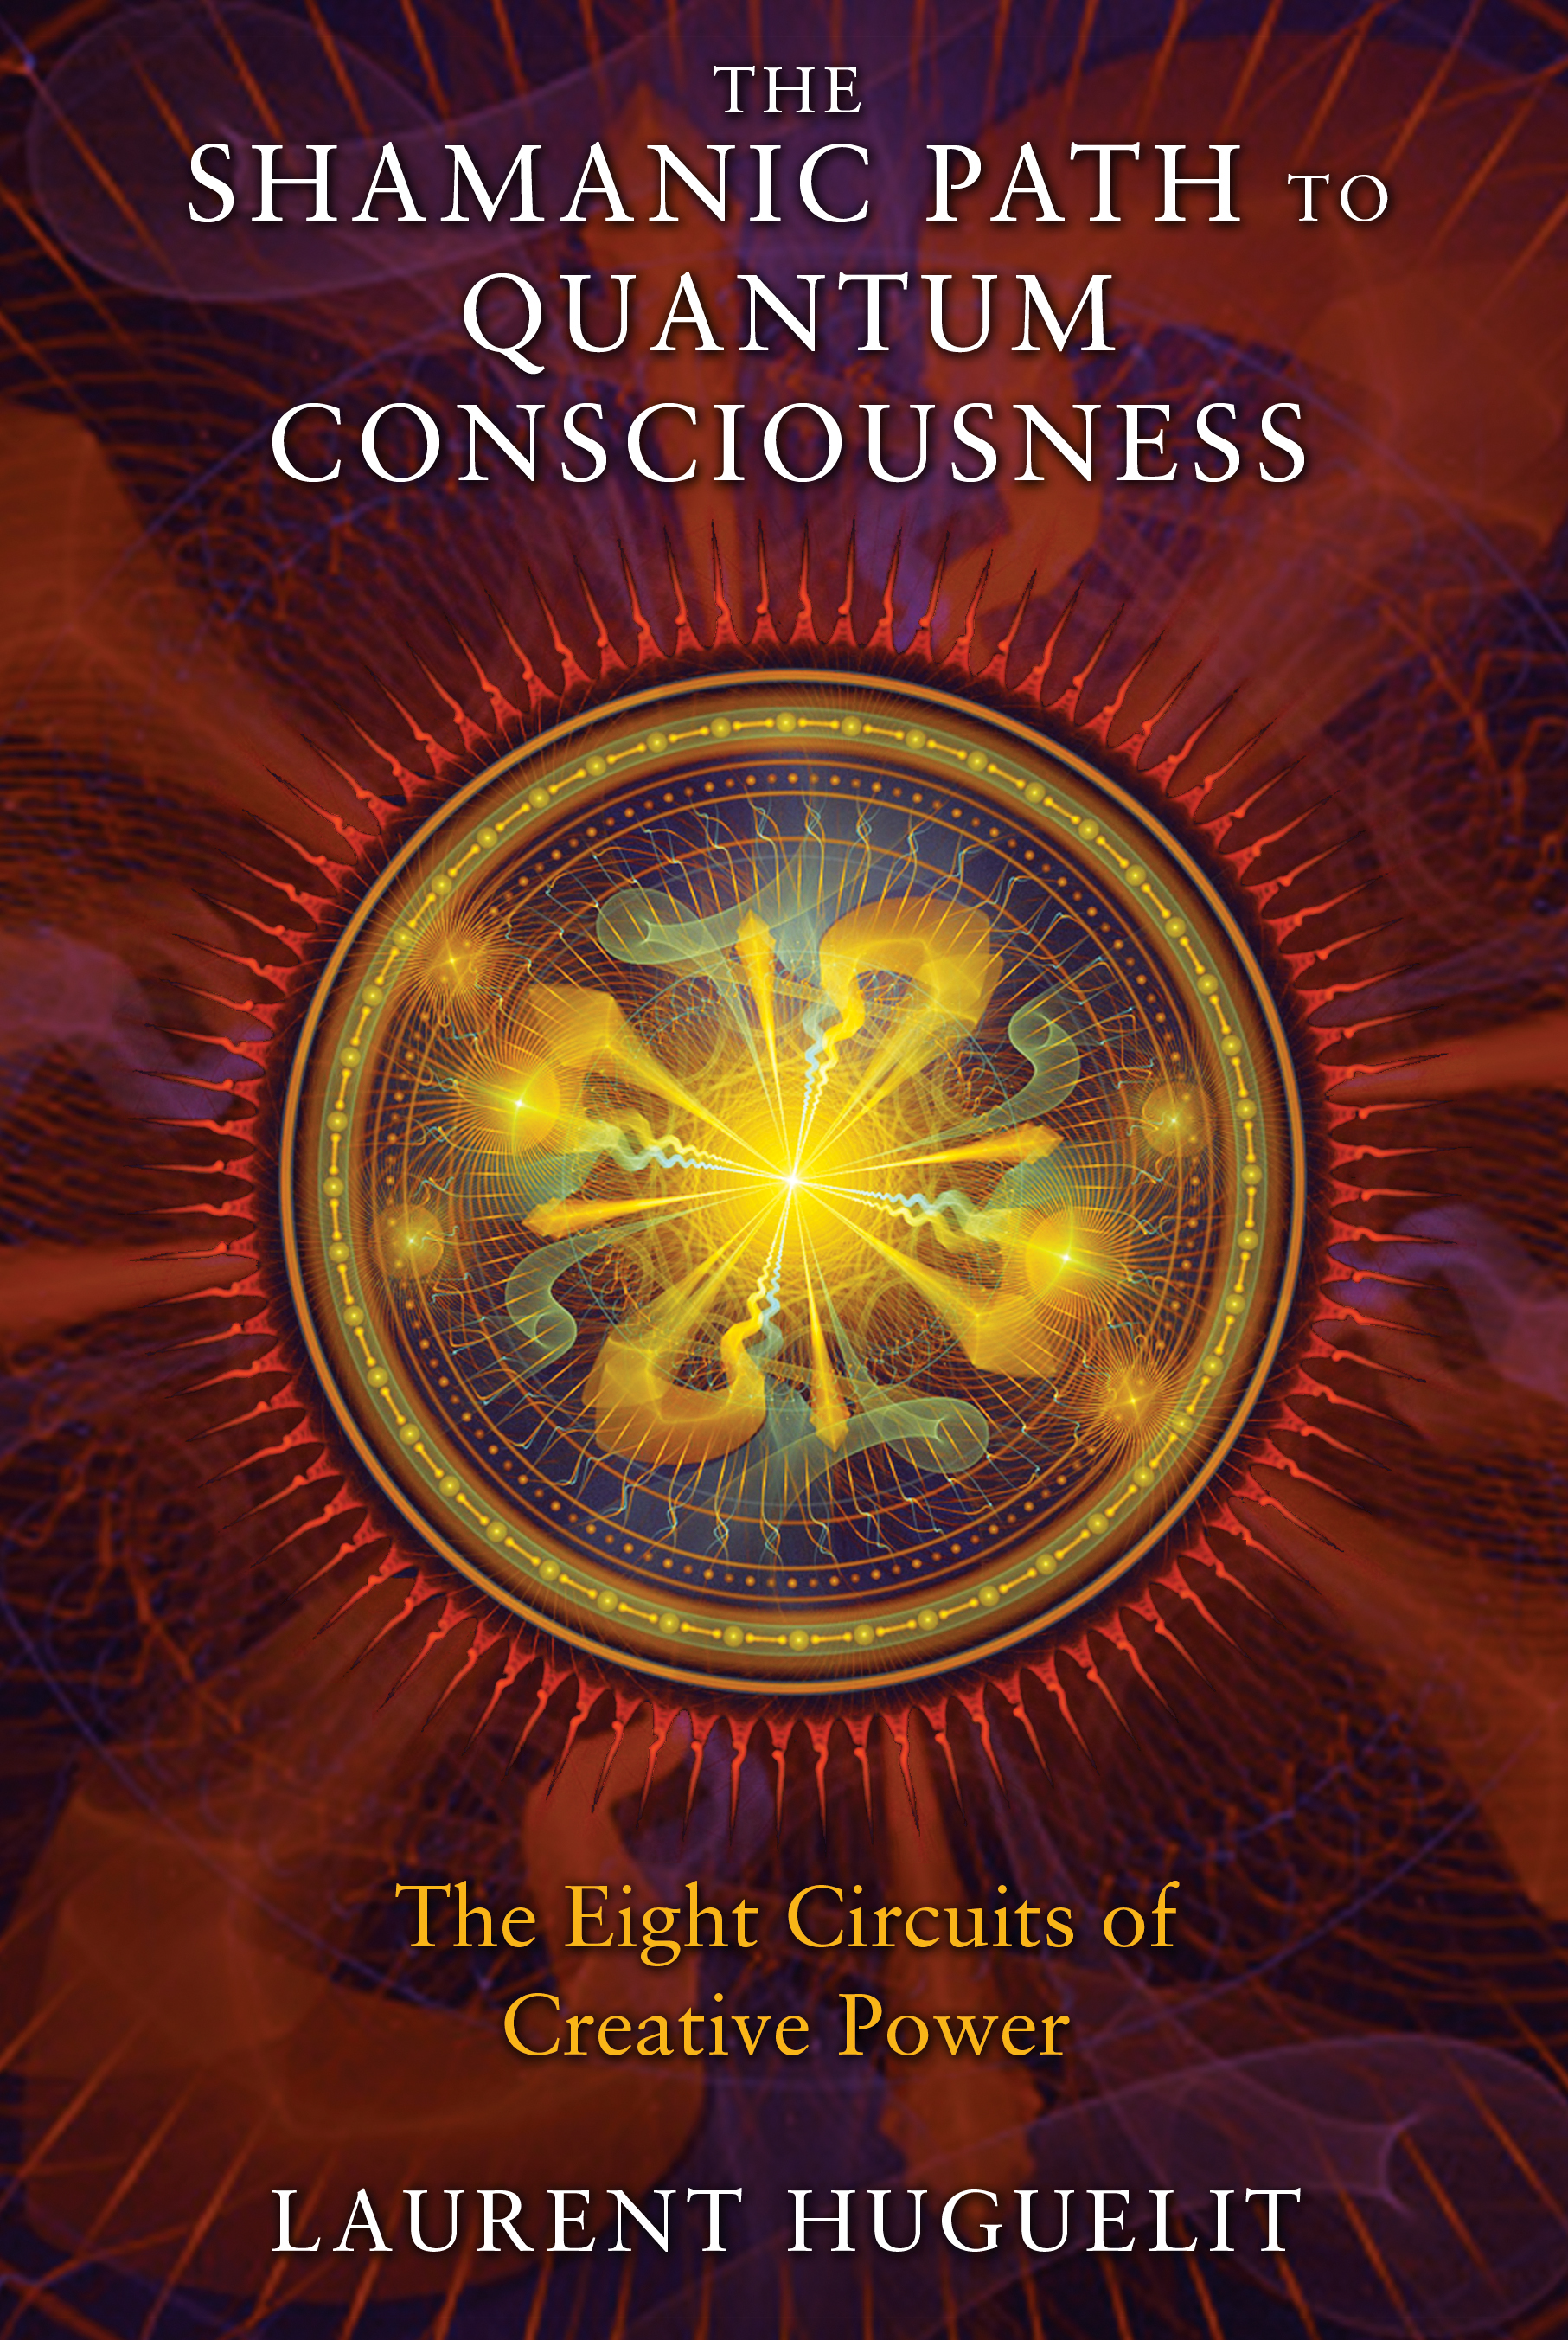 Shamanic-path-to-quantum-consciousness-9781591431671_hr